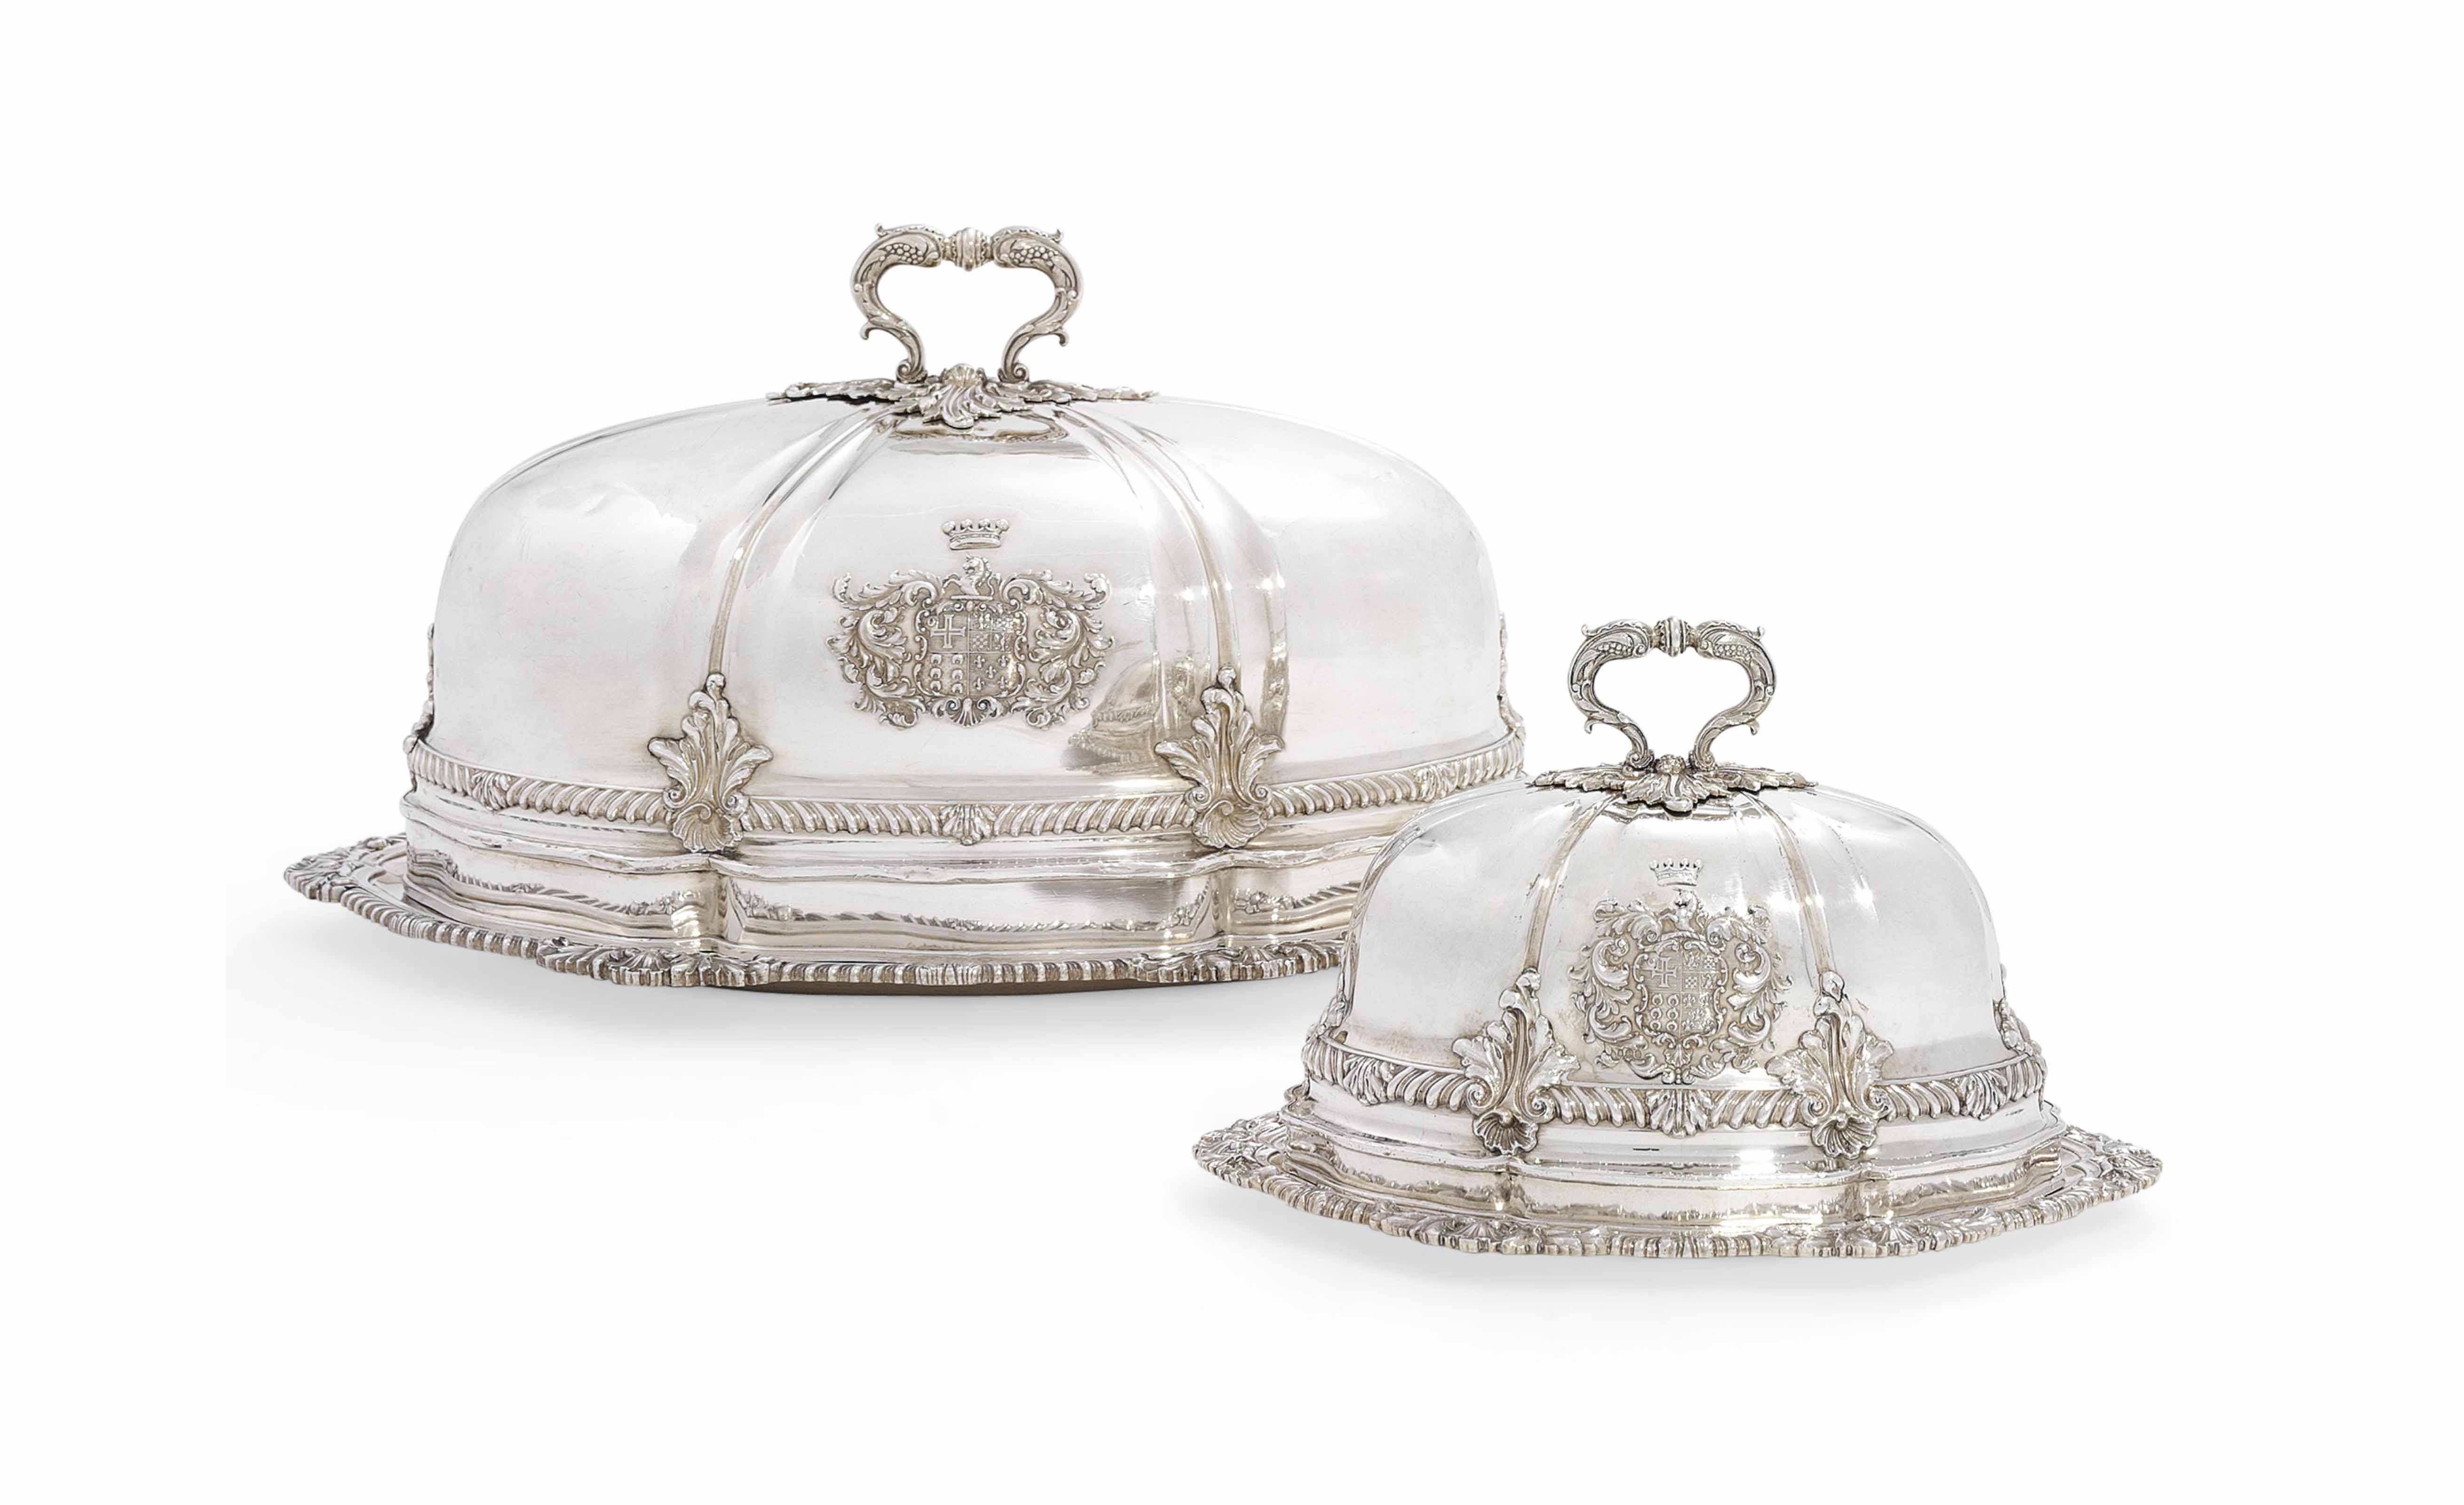 A GEORGE IV SILVER MEAT-DISH A